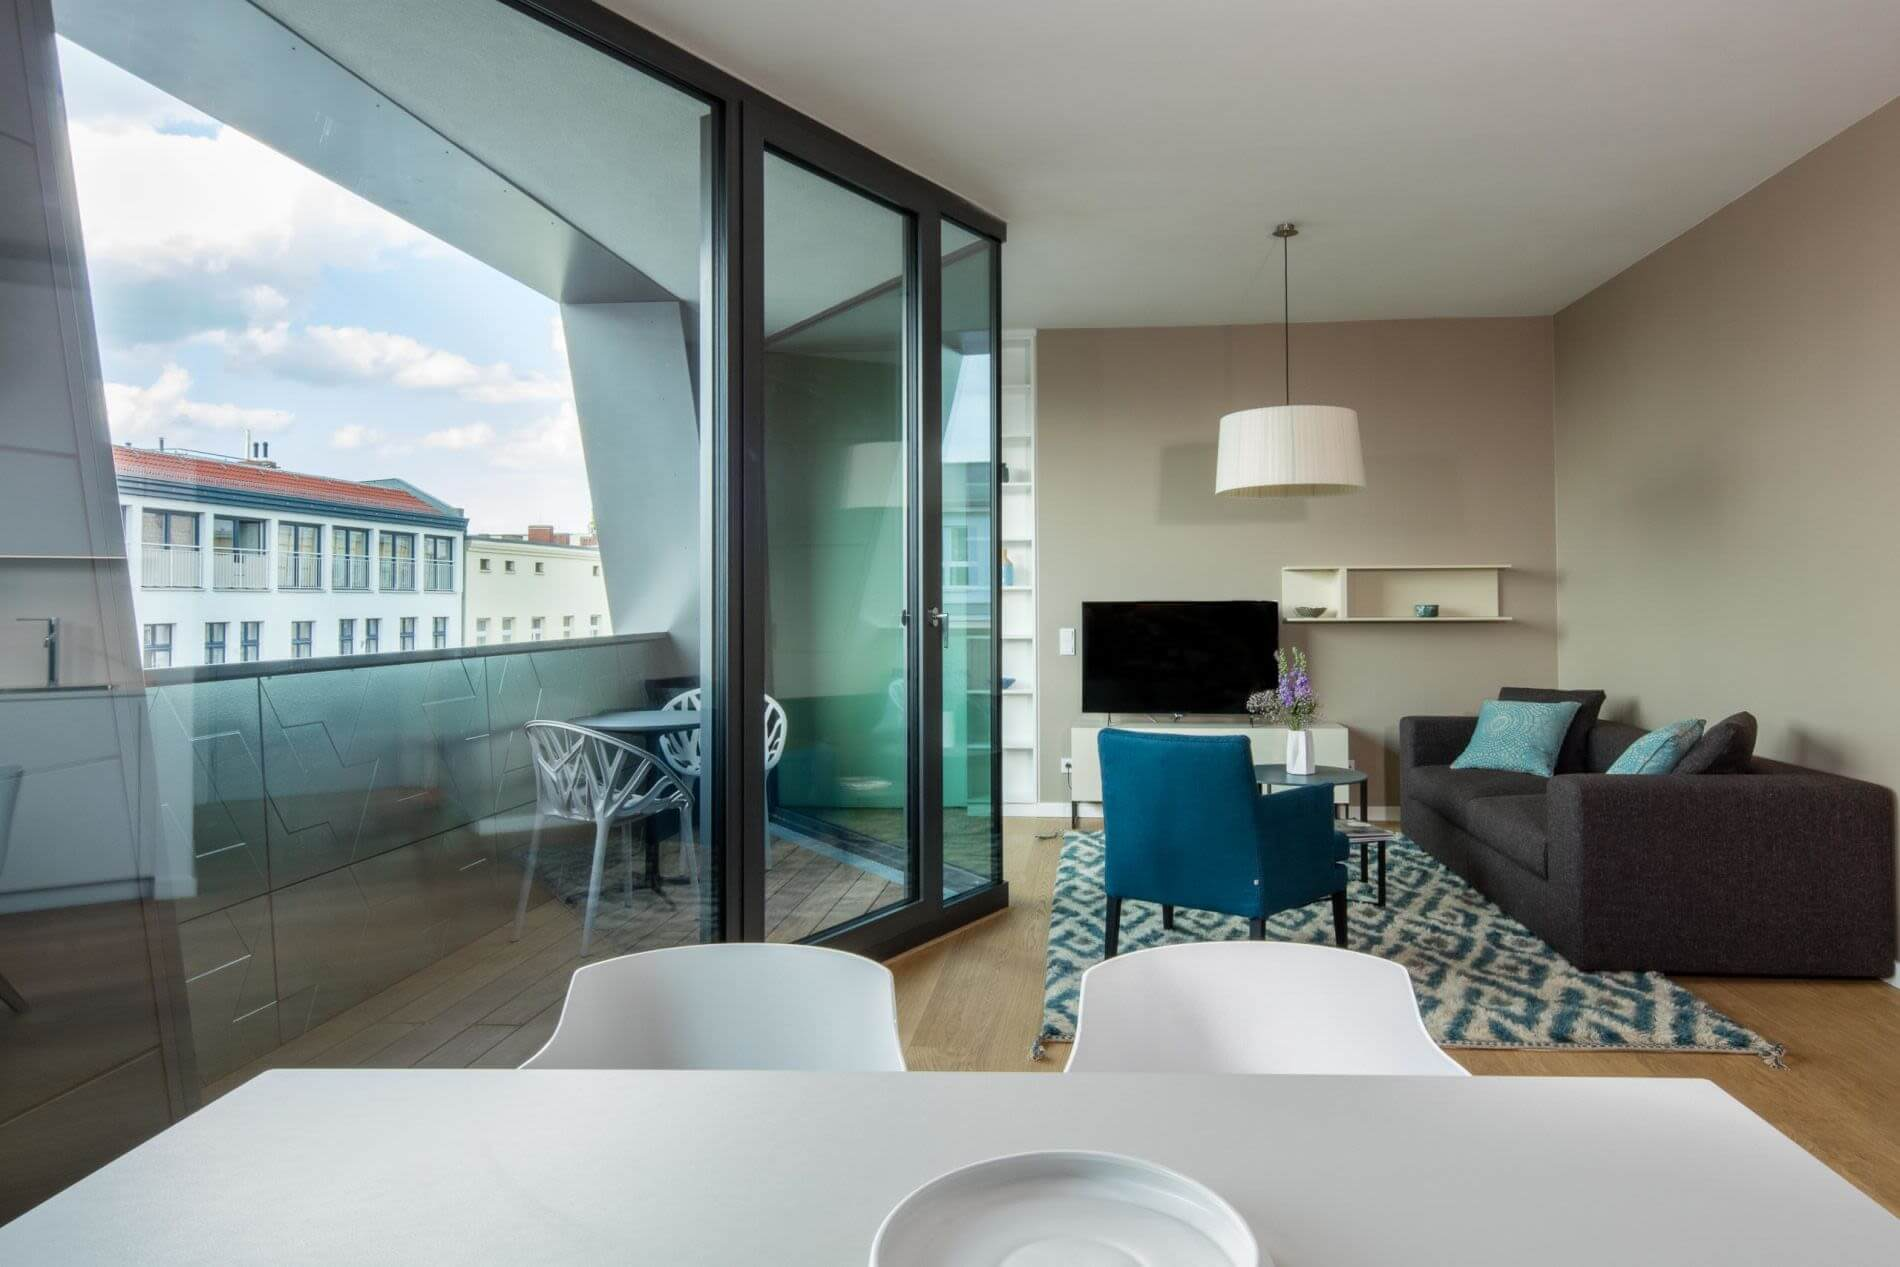 Serviced studio apartment with balcony for rent in Berlin